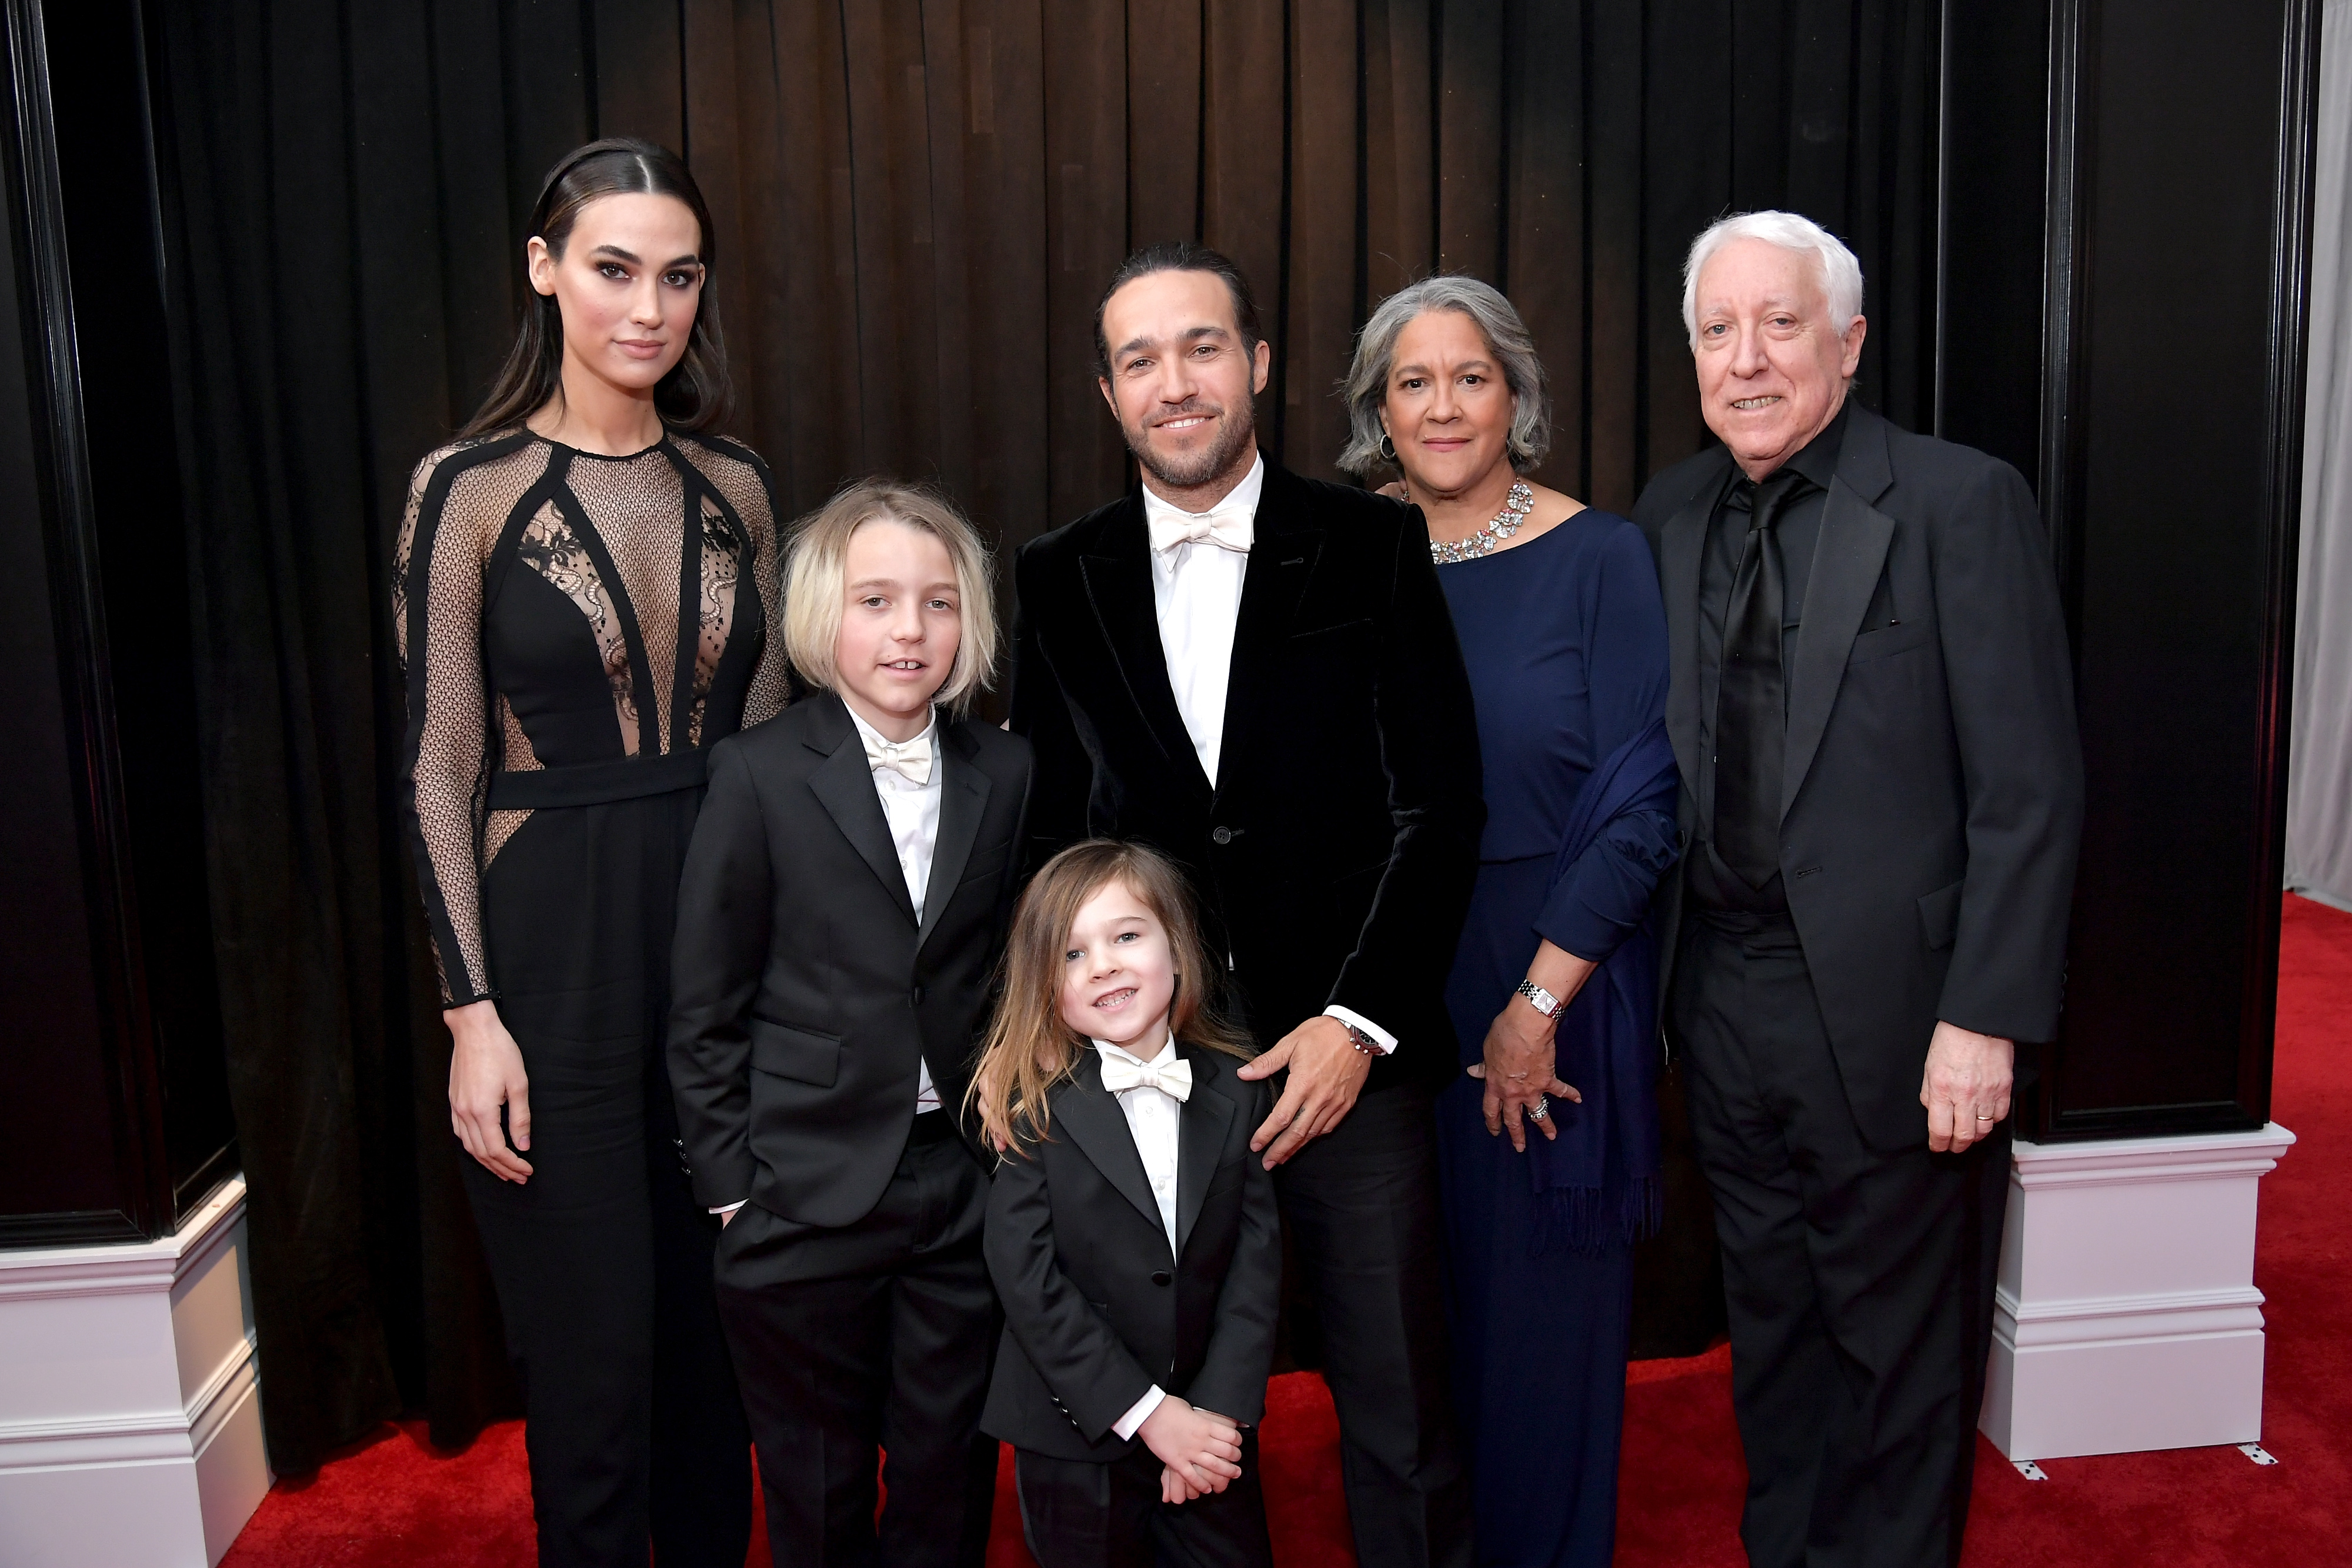 """Grammys 2019: Shawn Mendes, Miley Cyrus and More Stars Who Brought Family Members as Dates - The Fall Out Boy bassist posed for an epic family photo with wife Meagan Camper , their son 4-year-old son, Saint, his parents, Dale Wentz and Pete Wentz II, and his 10-year-old son, Bronx, whom he shares with ex-wife Ashlee Simpson. The """"I Do"""" singer also attended the Grammys with her husband, Evan Ross."""